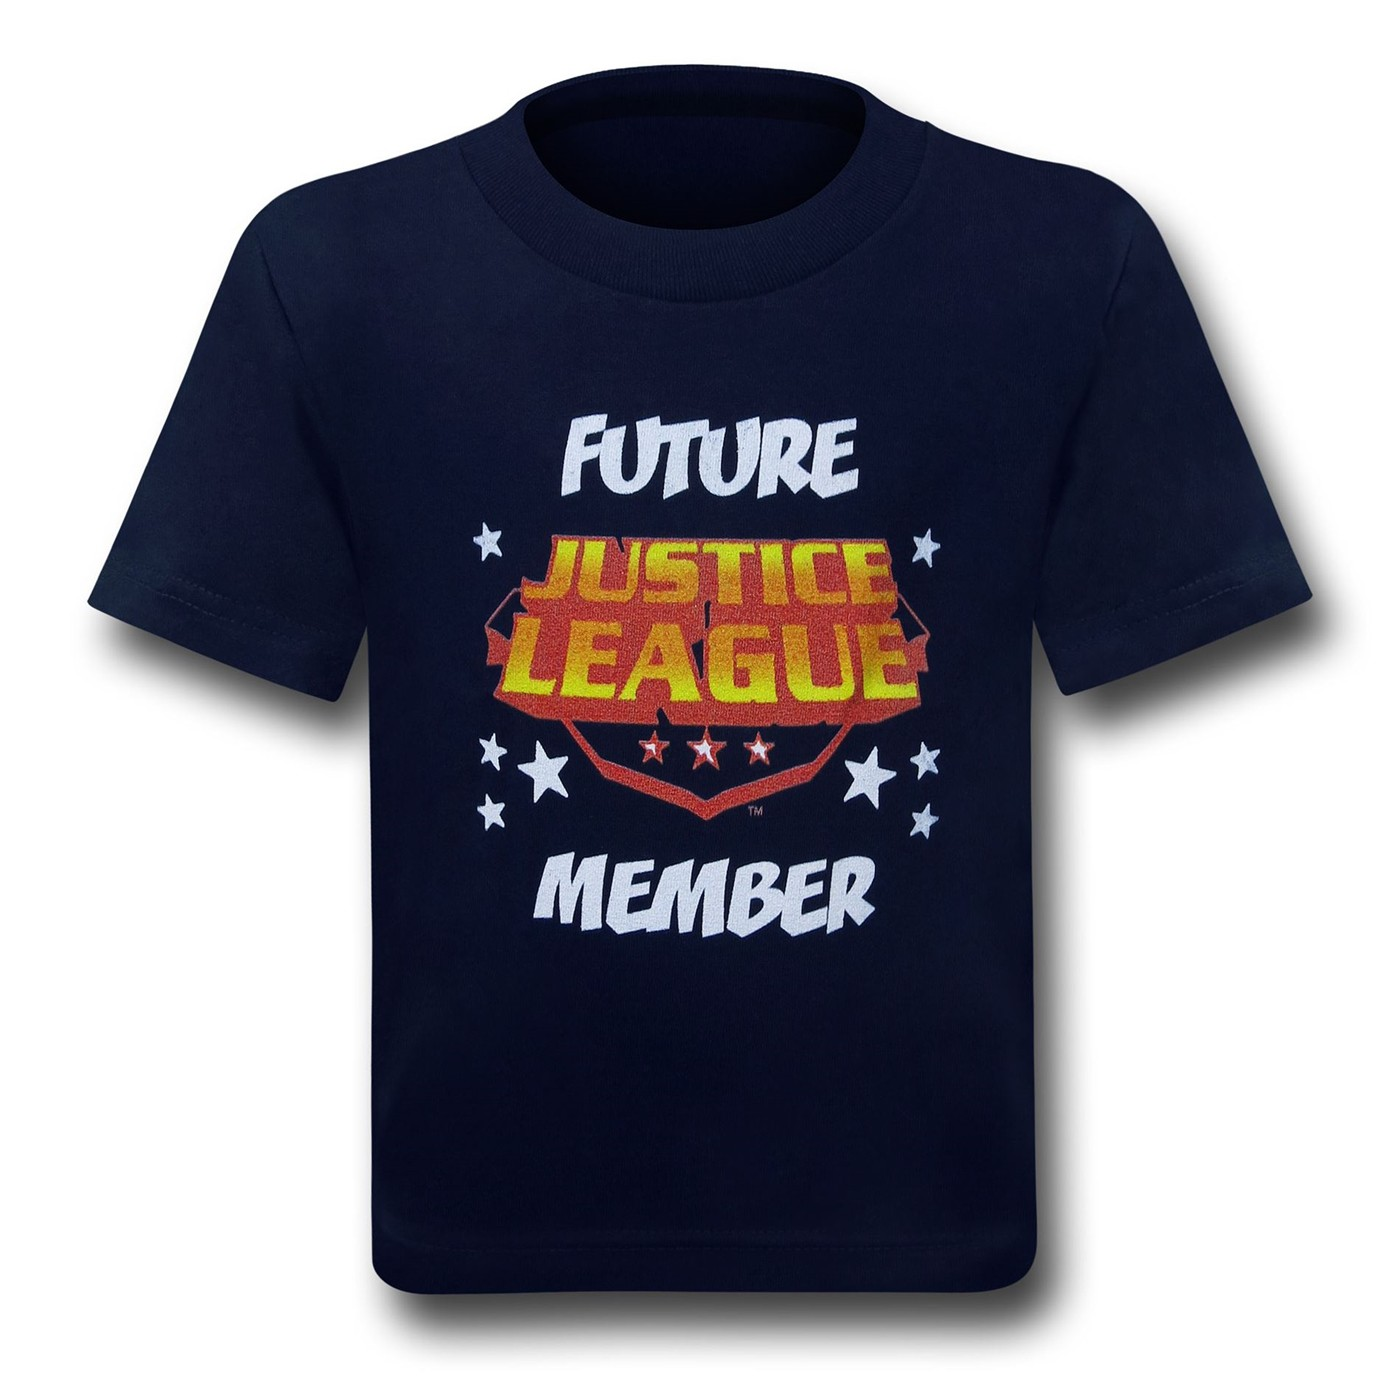 JLA Future Member Kids T-Shirt